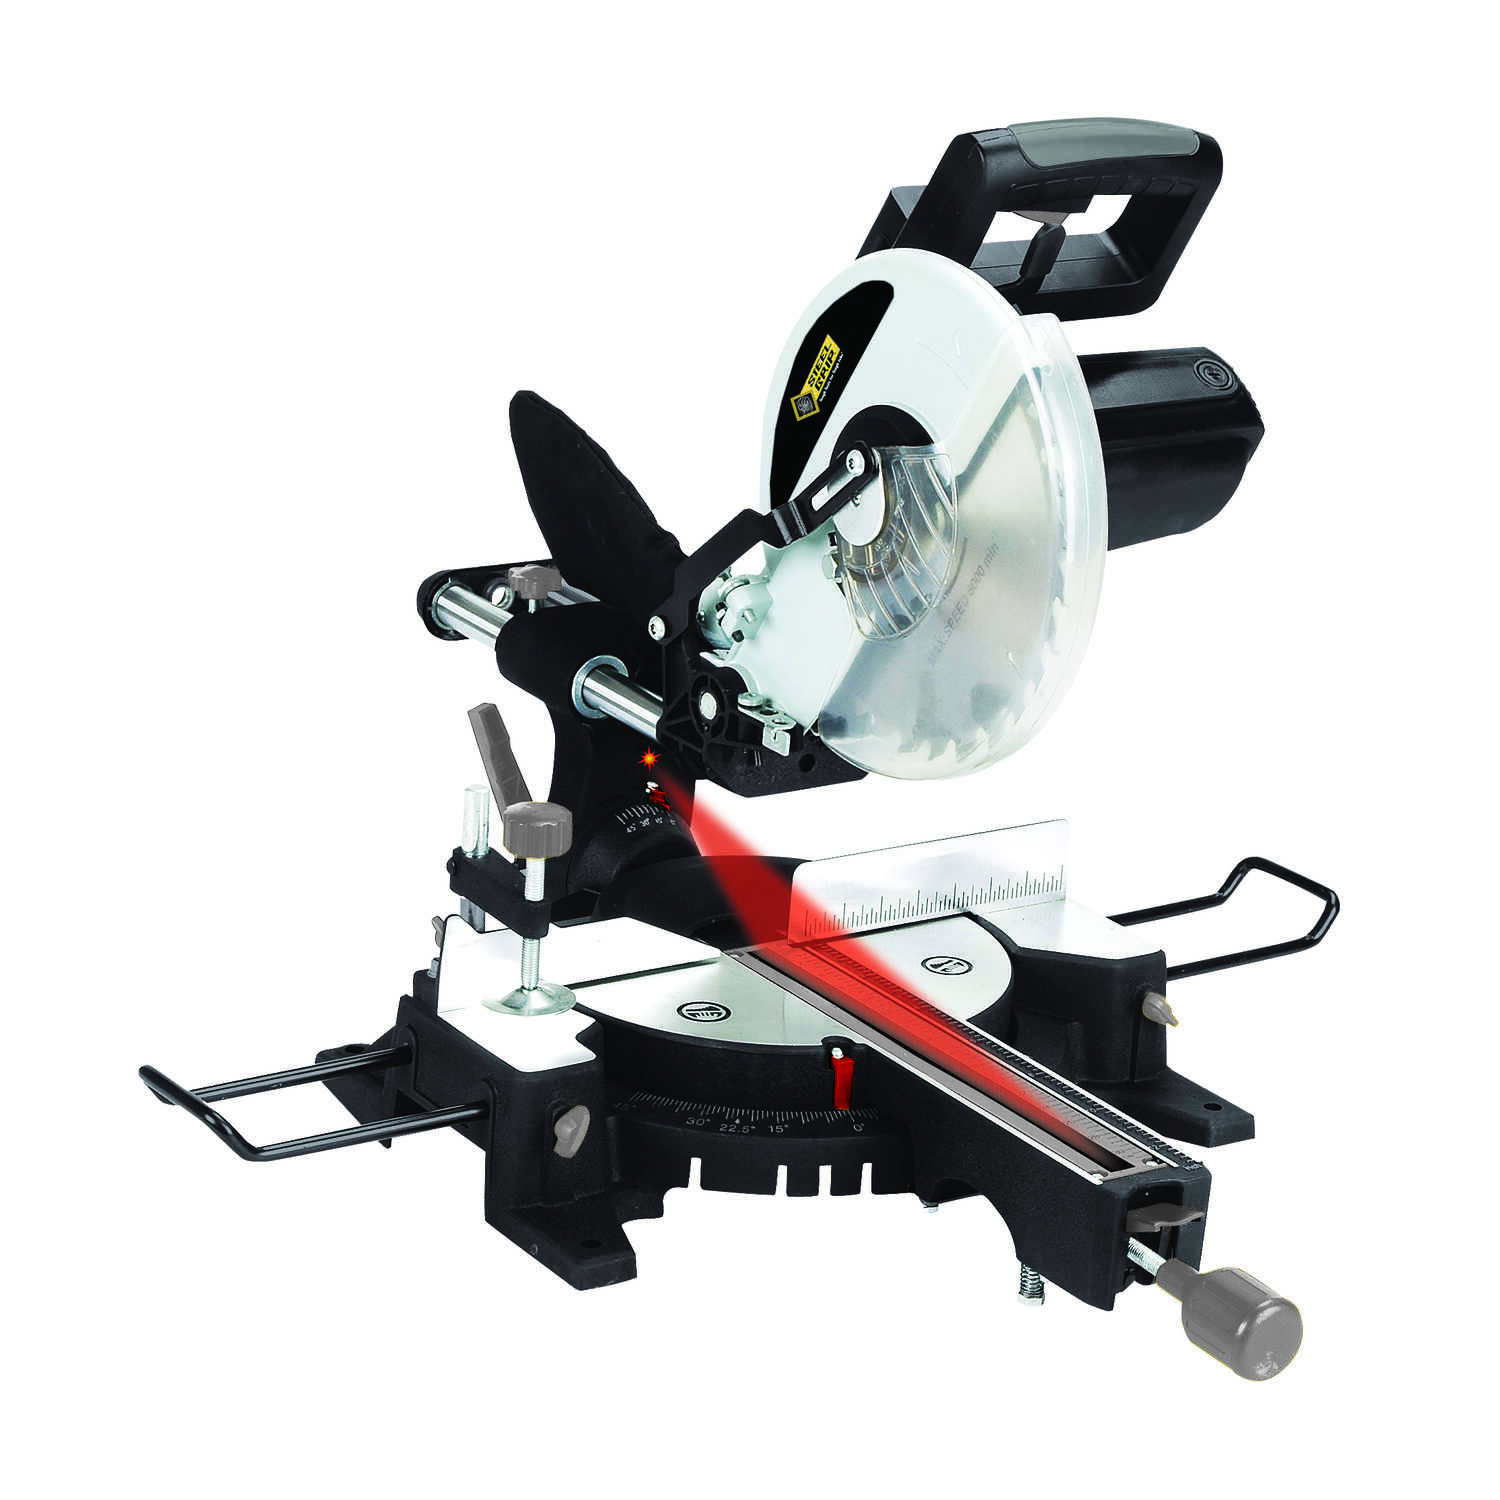 Steel Grip  10 in. Compound Miter Saw  15 amps Corded  5,300 rpm